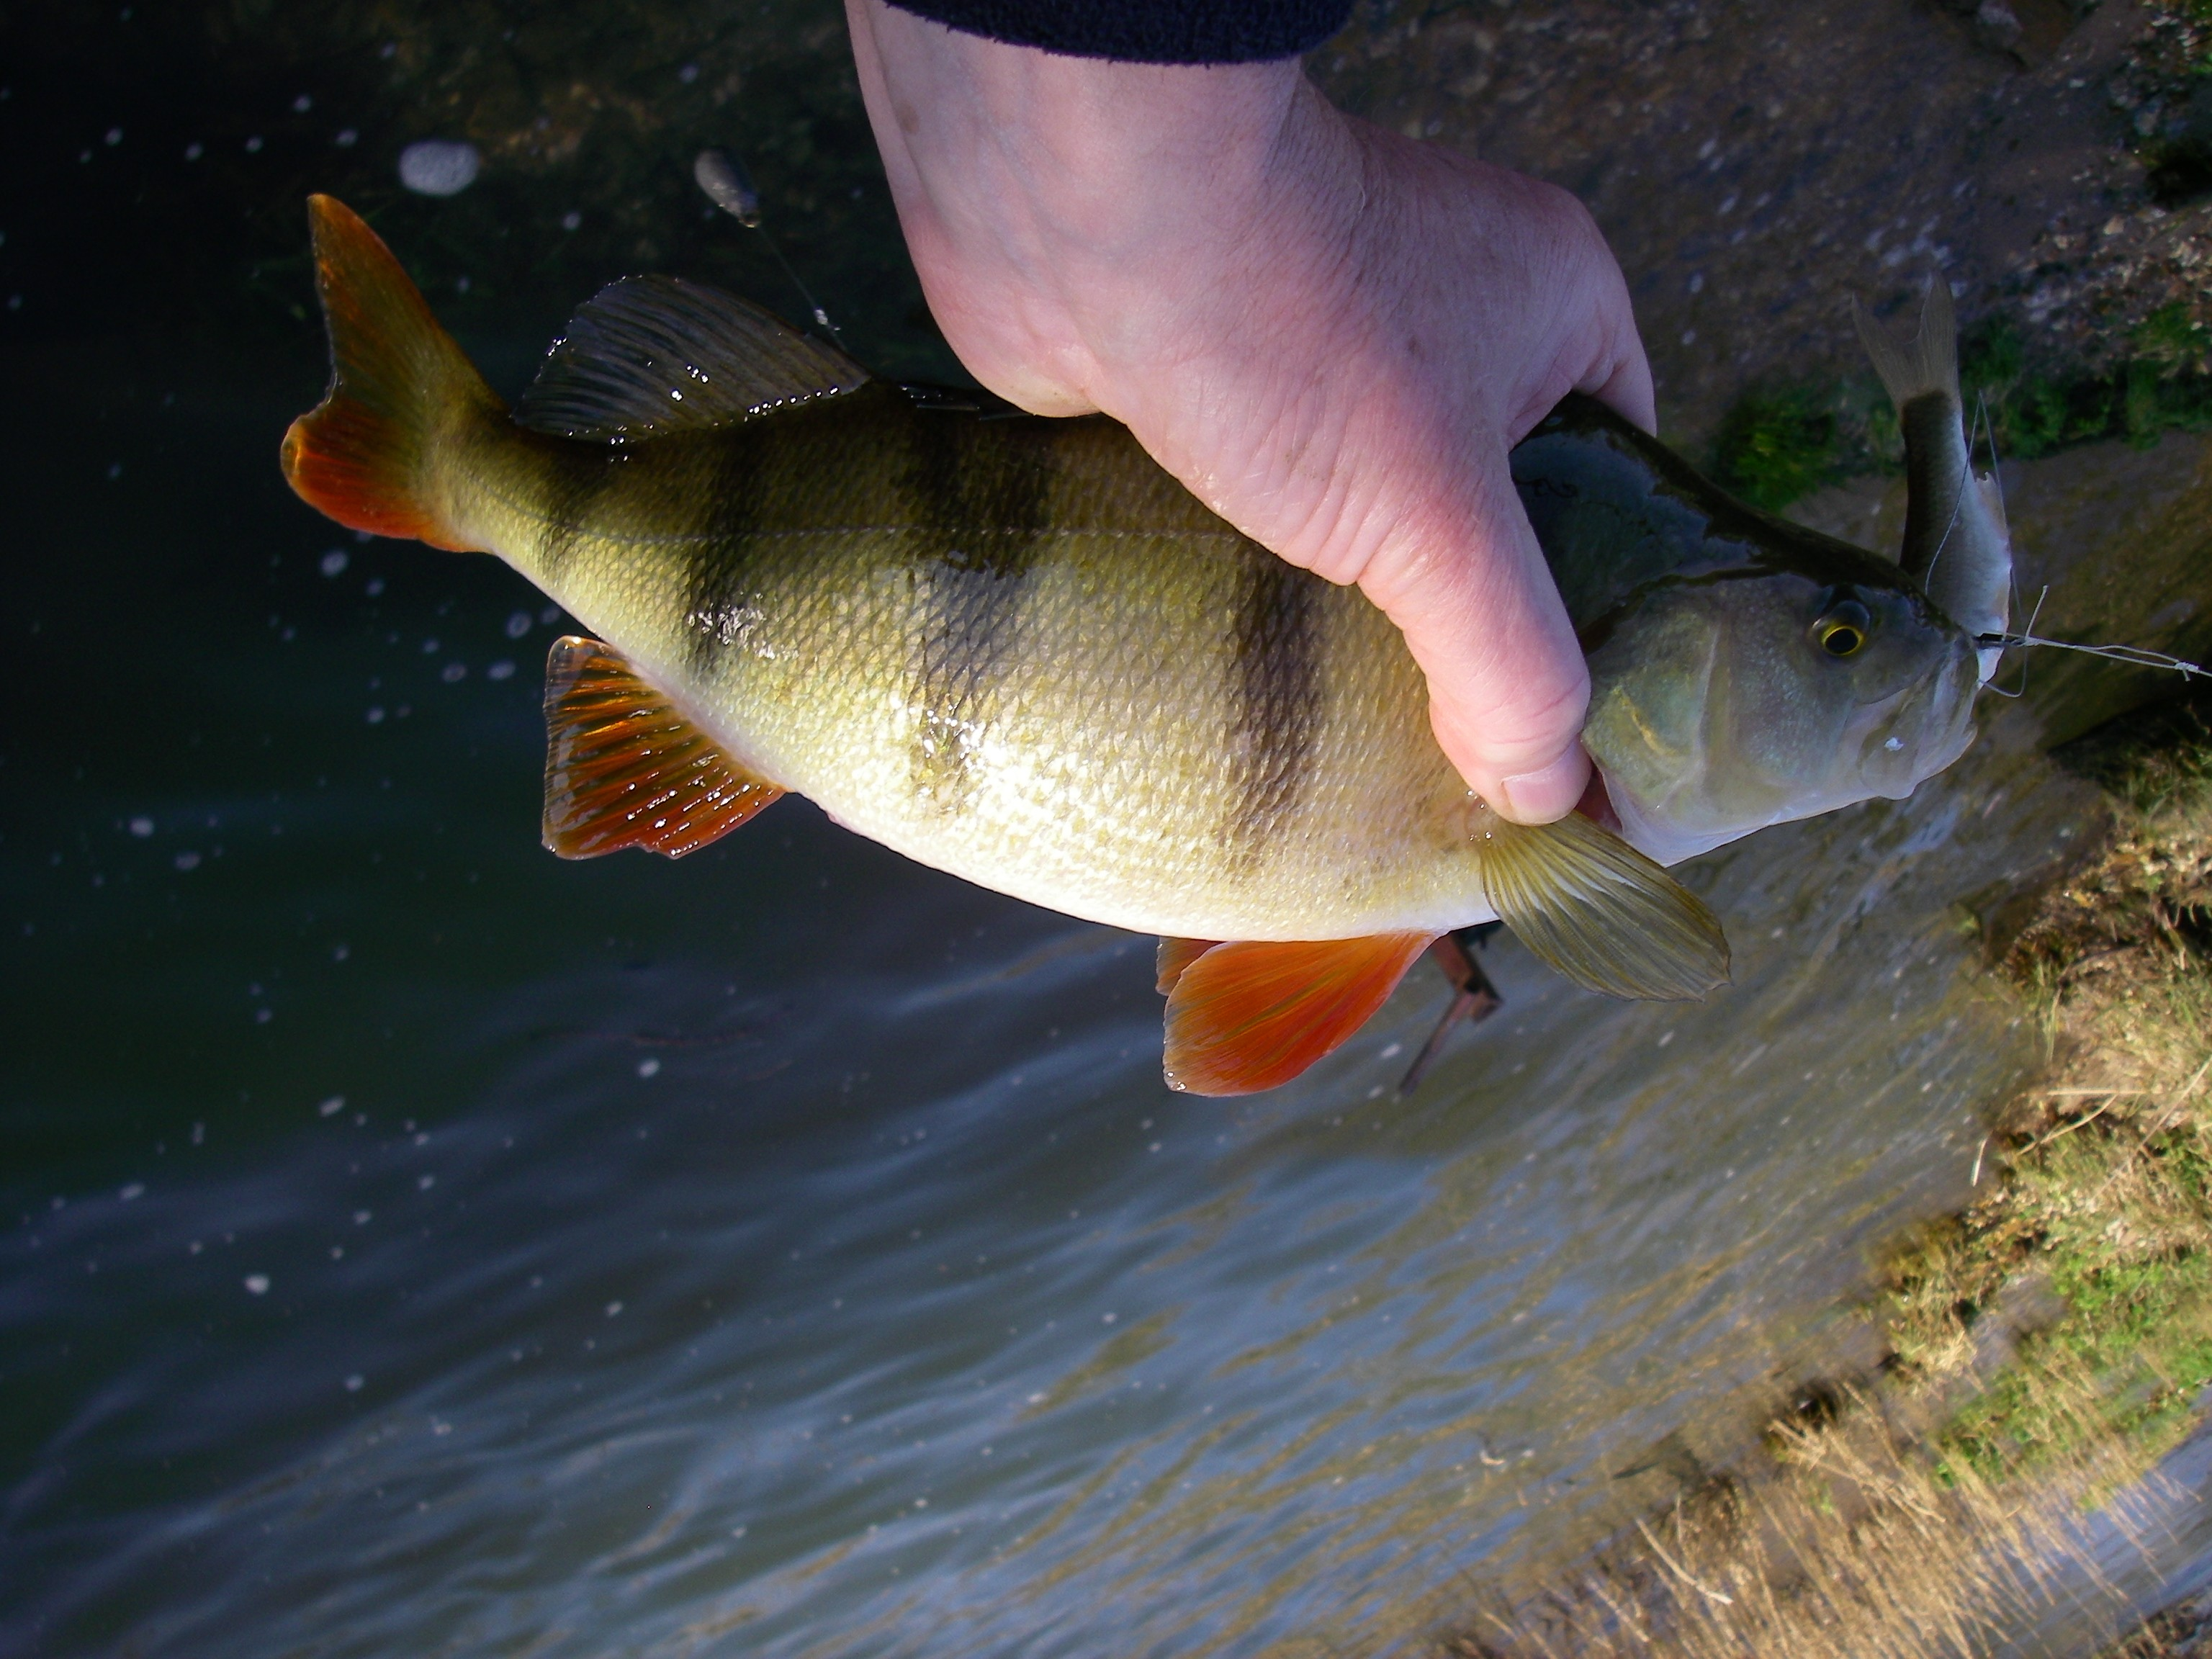 Perfect This Fish Preferred A Live What Do Perch Active Angling New Zealand How Long Do Fish Live Gfish How Long Do Fish Live From Fair houzz-02 How Long Do Fish Live